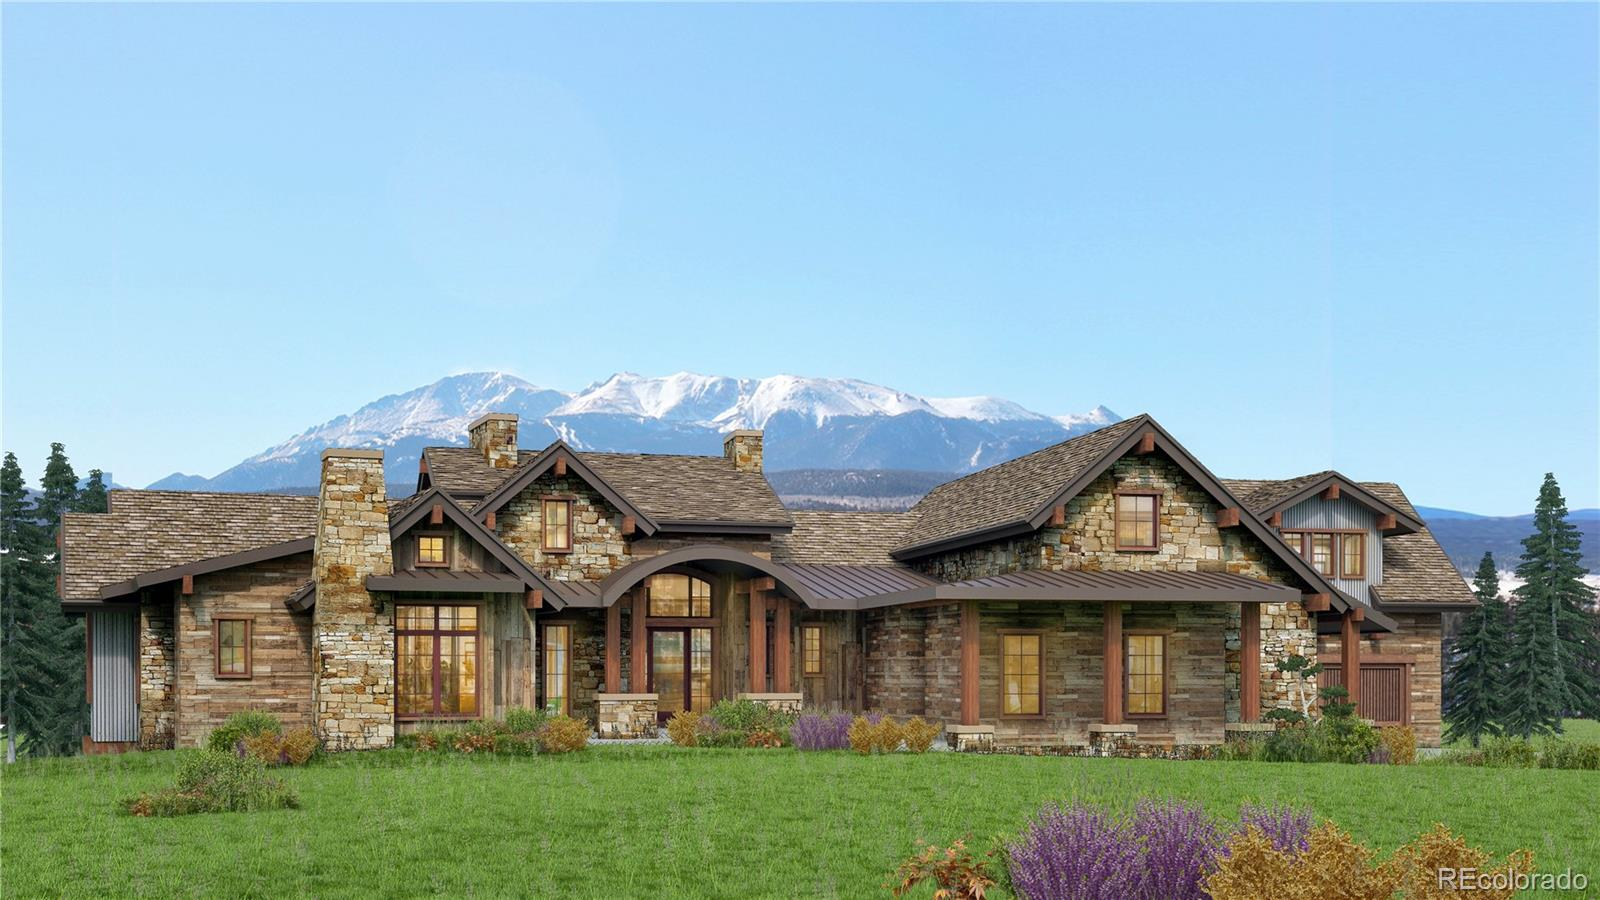 """UNDER CONTRACT:  A """"Colorado Contemporary"""" to-be-built by Sterling Custom Homes with panoramic mountain views, set on 56 sprawling acres in the luxurious gated, estate community of Bears Den. The estimated completion of this custom home is the second half of 2022. Sterling Homes is known for their """"built-in"""" WOW impact, blending your home perfectly with the surrounding landscape to maximize views and native topography. The home combines classic earthy materials such as thick stacked stone, wood flooring & large ceiling  beams. Countless, expansive windows will frame the 360 degree views, ranging from the Town of Castle Rock, north to the Denver skyline, with a backdrop of the Pike National Forest. This walk-out ranch style home will feature  open-living rooms with spacious gathering areas flowing from the inside out, a large kitchen and ample dining spaces, a main floor master suite and an upper level guest suite. The master craftsmanship embraces comfortable, livable elegance.  The ranch sized lot is large enough for custom outbuildings of the owner's choice--be it a horse barn, car barn, riding arena, sports court, etc. (not included in said estimated list price).  This one-of-a-kind WOW property is rarely seen """"close in""""--56 Acres, gated estate community, peace & quite & fabulous views.  So many possibilities for the discretionary buyer.     LOT CANNOT BE SUBDIVIDED"""